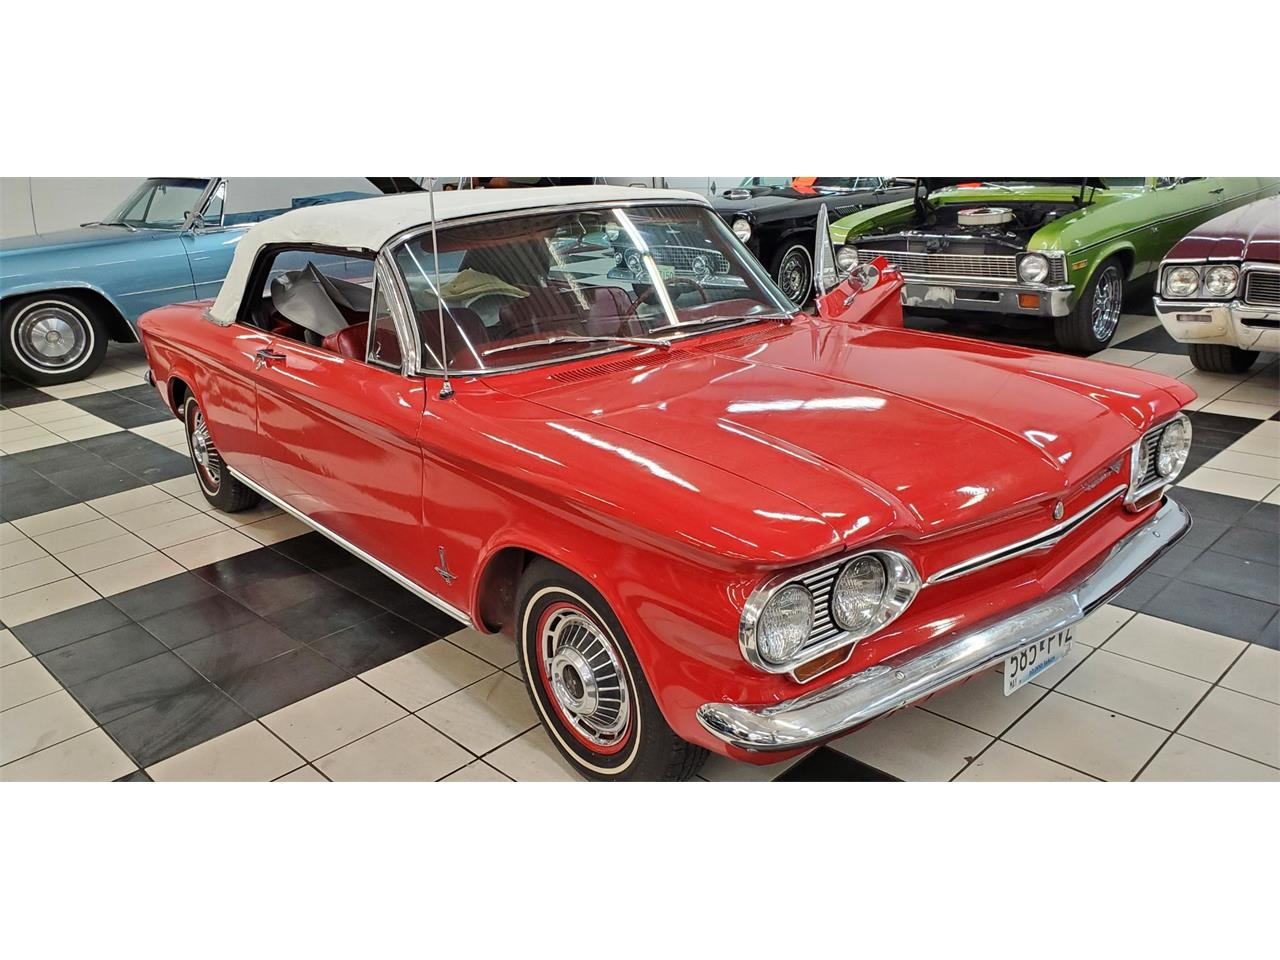 1965 Chevrolet Corvair Monza (CC-1376373) for sale in Annandale, Minnesota